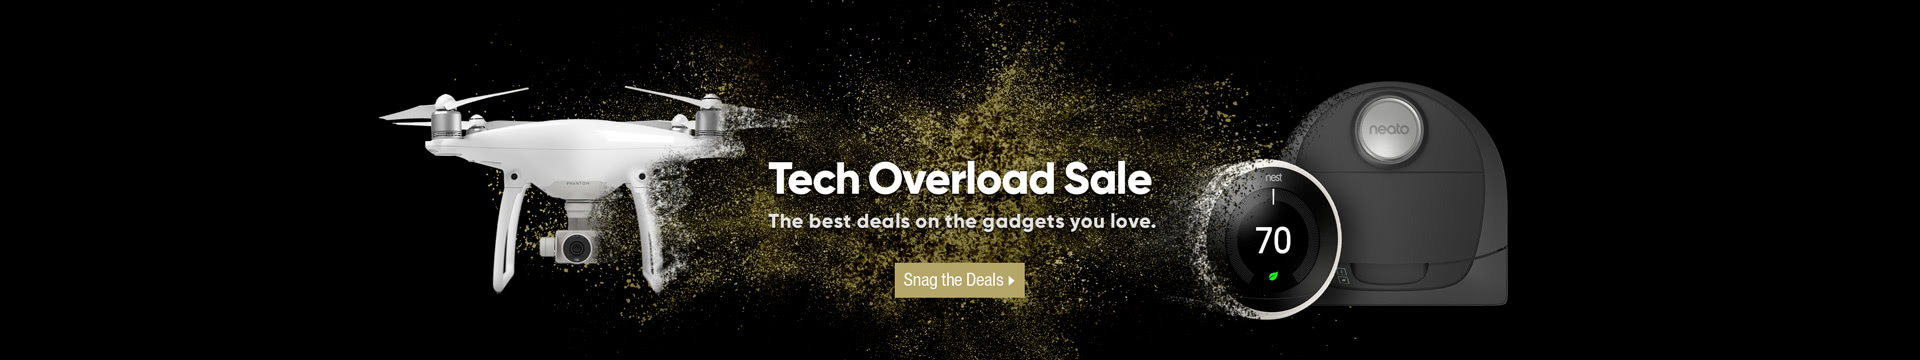 Tech overload sale